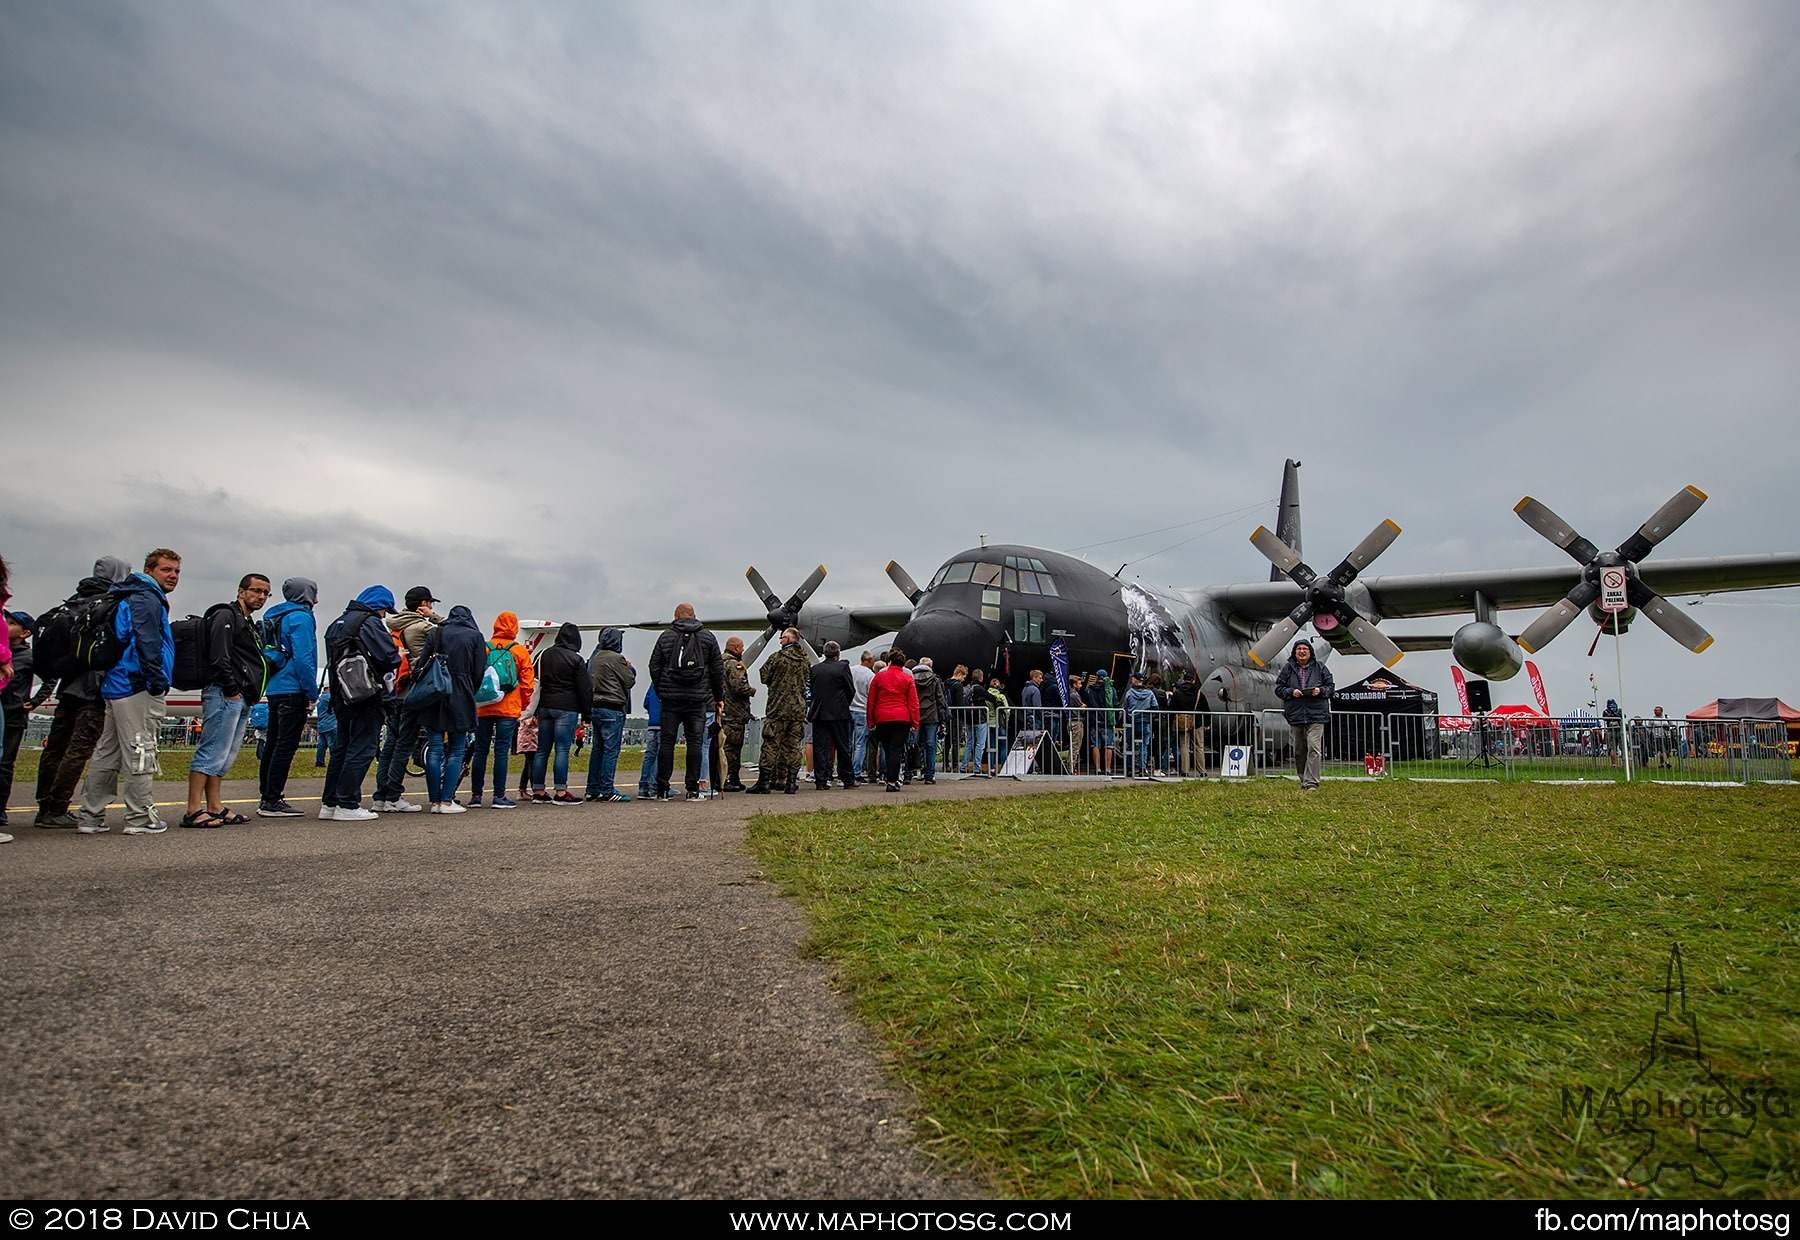 11. Long line of the queue for a closer look inside the Belgium Air Force C-130H Hercules with special livery